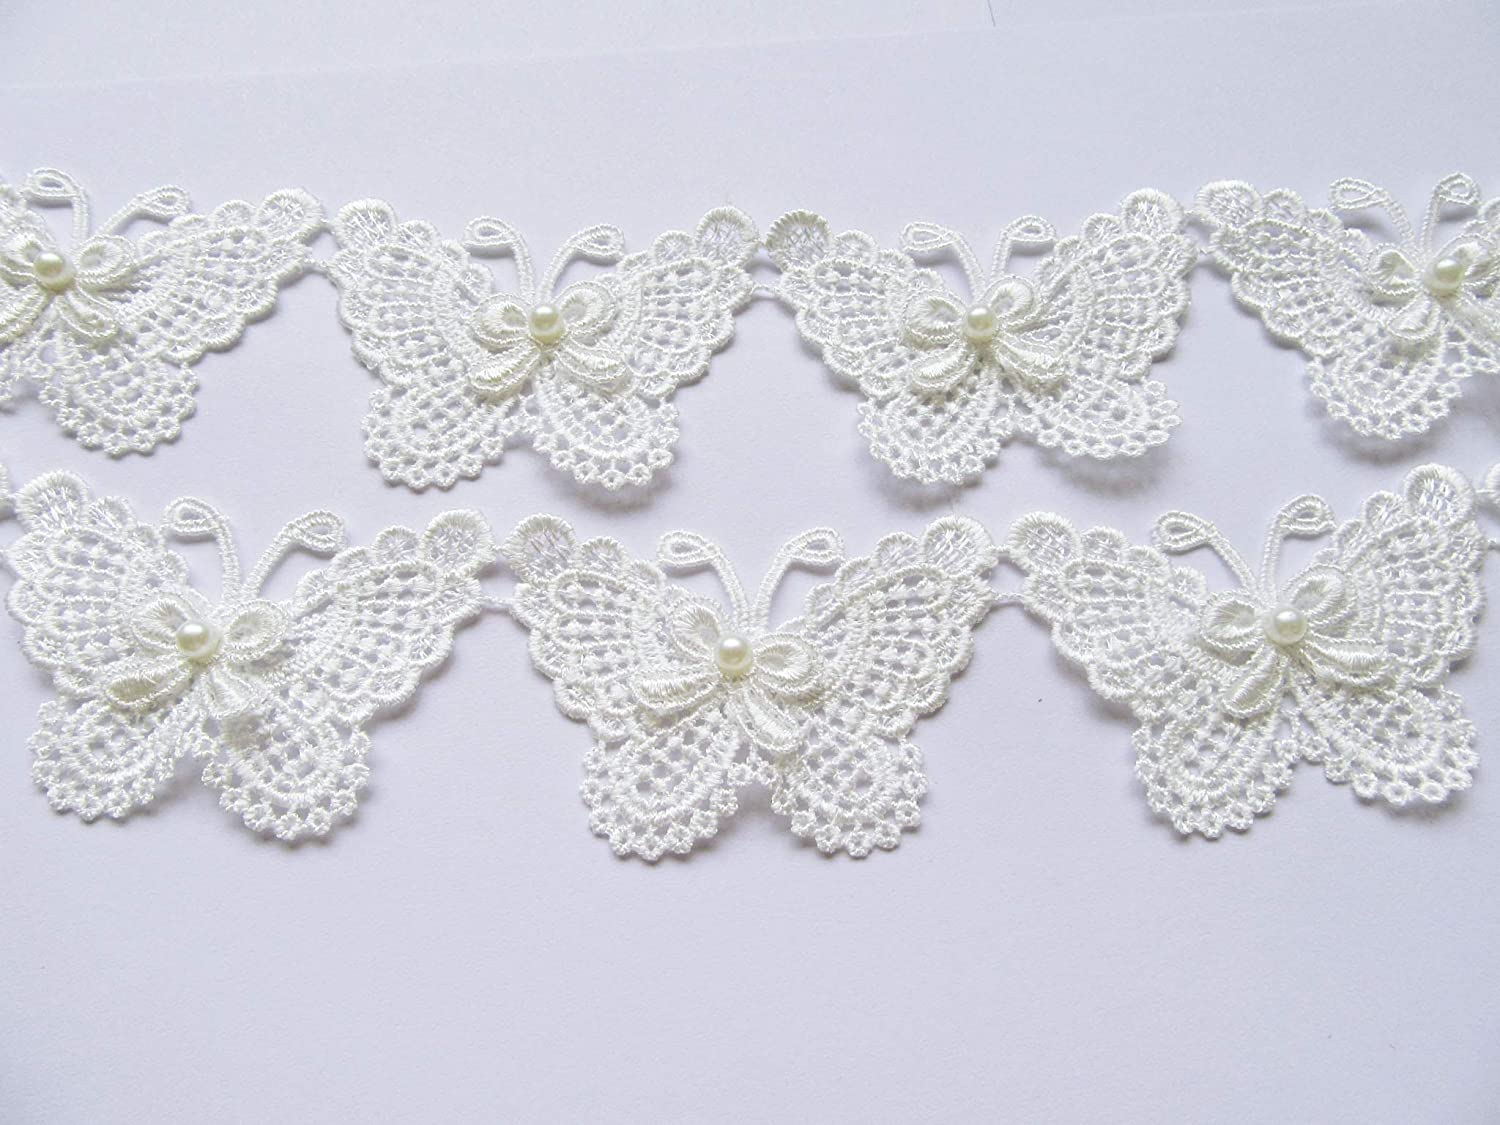 XiXiboutique 5 Yards Butterfly Challenge the lowest price of Japan Lace Applique Trim Wedding DIY Se Direct stock discount